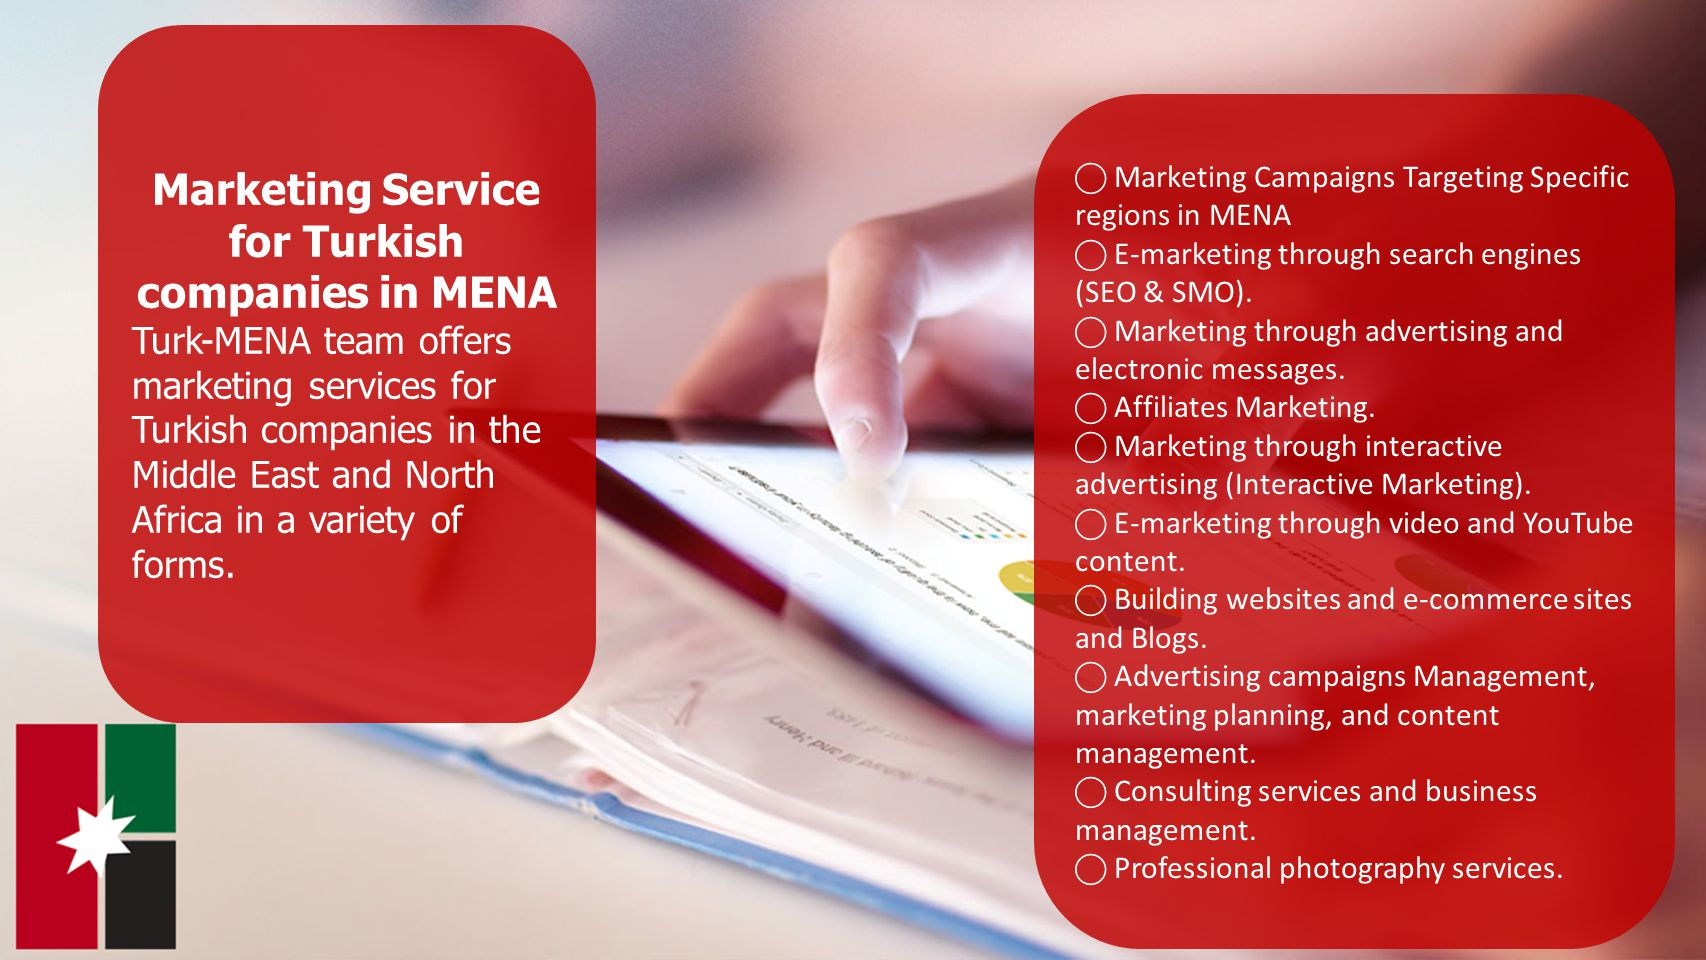 Marketing Service for Turkish companies in MENA